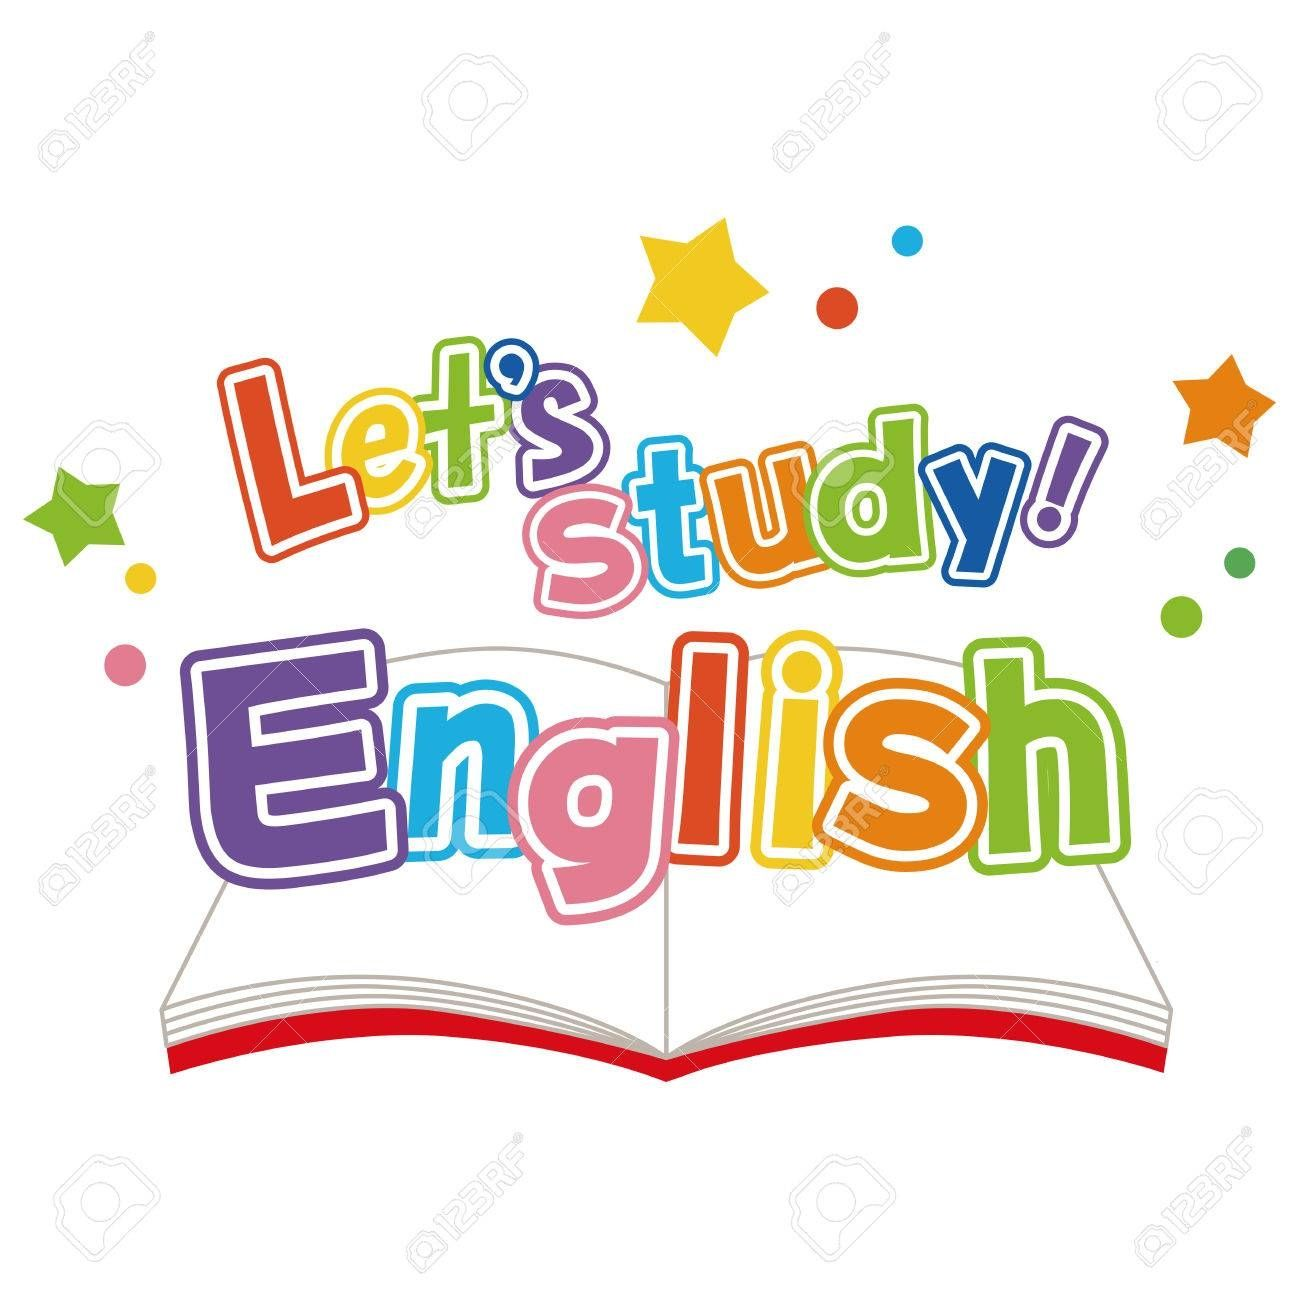 English Clipart Images In 2021 Learn English English Study English Logo